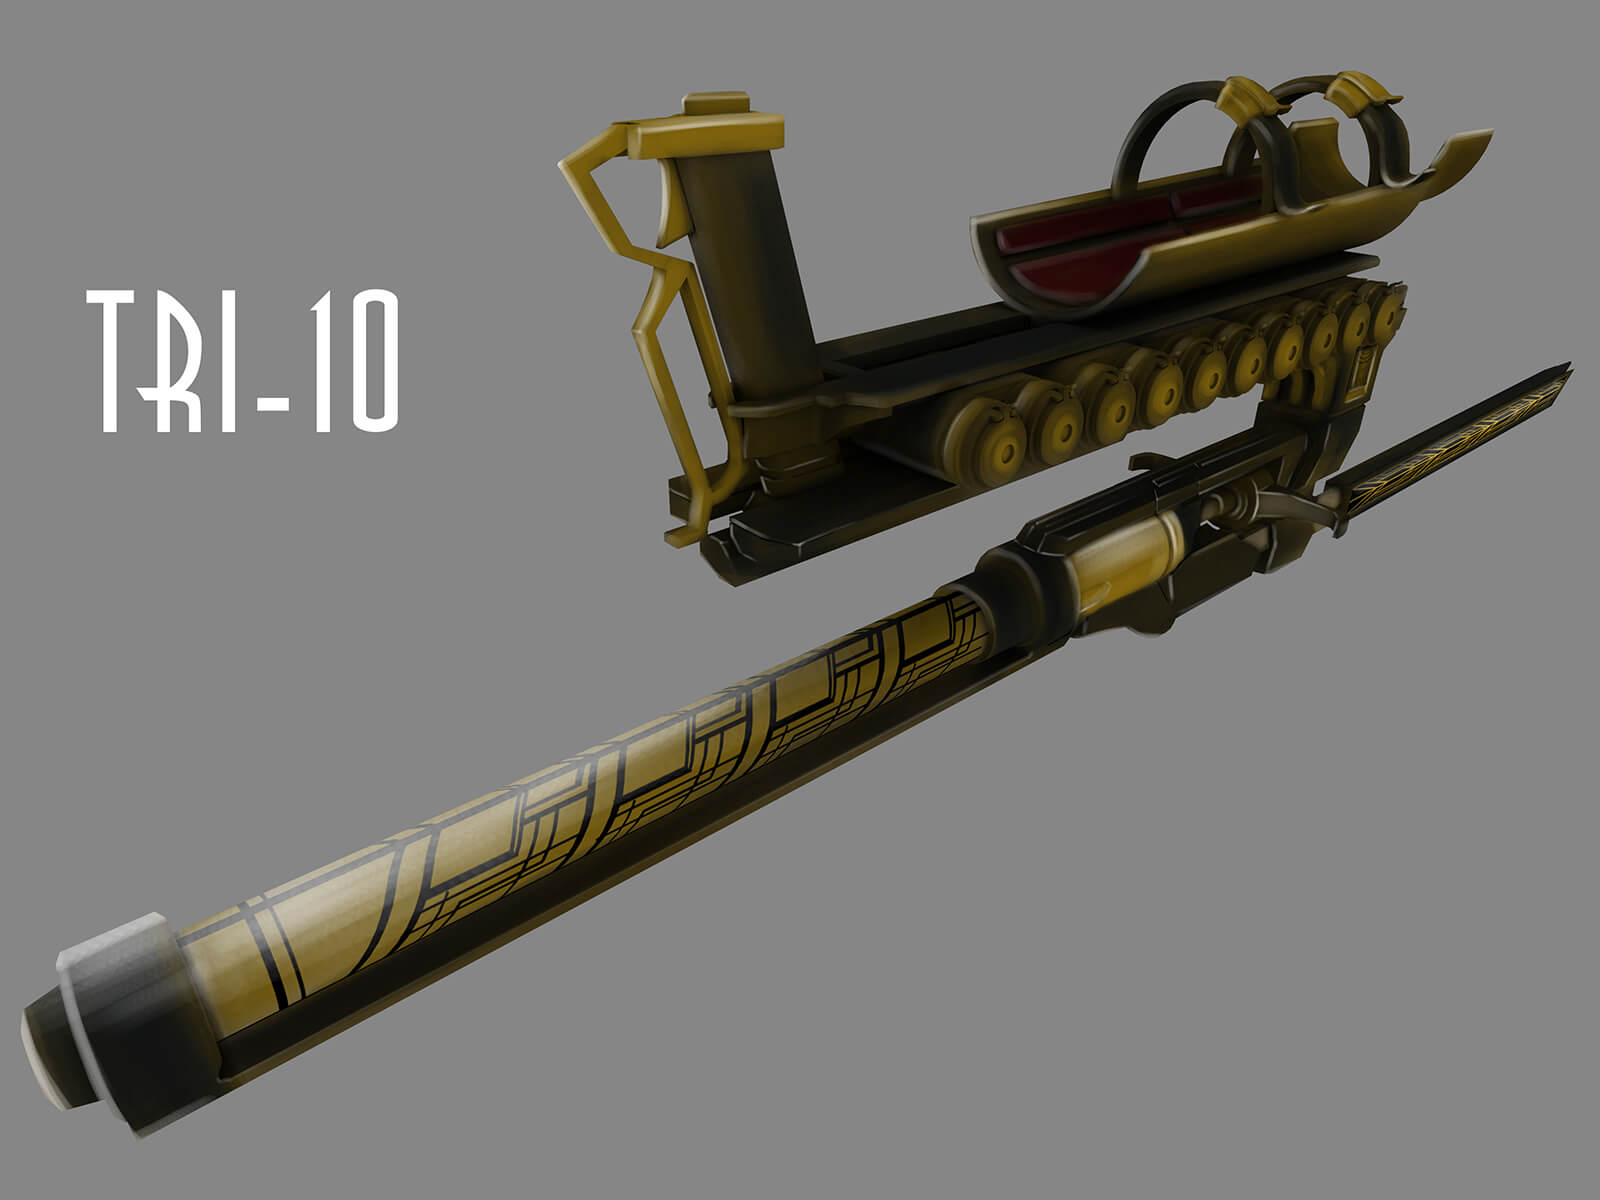 Concept art of a mechanical, arm-held weapon with a black, gold-and-black adorned shaft, and concealed gun barrel.